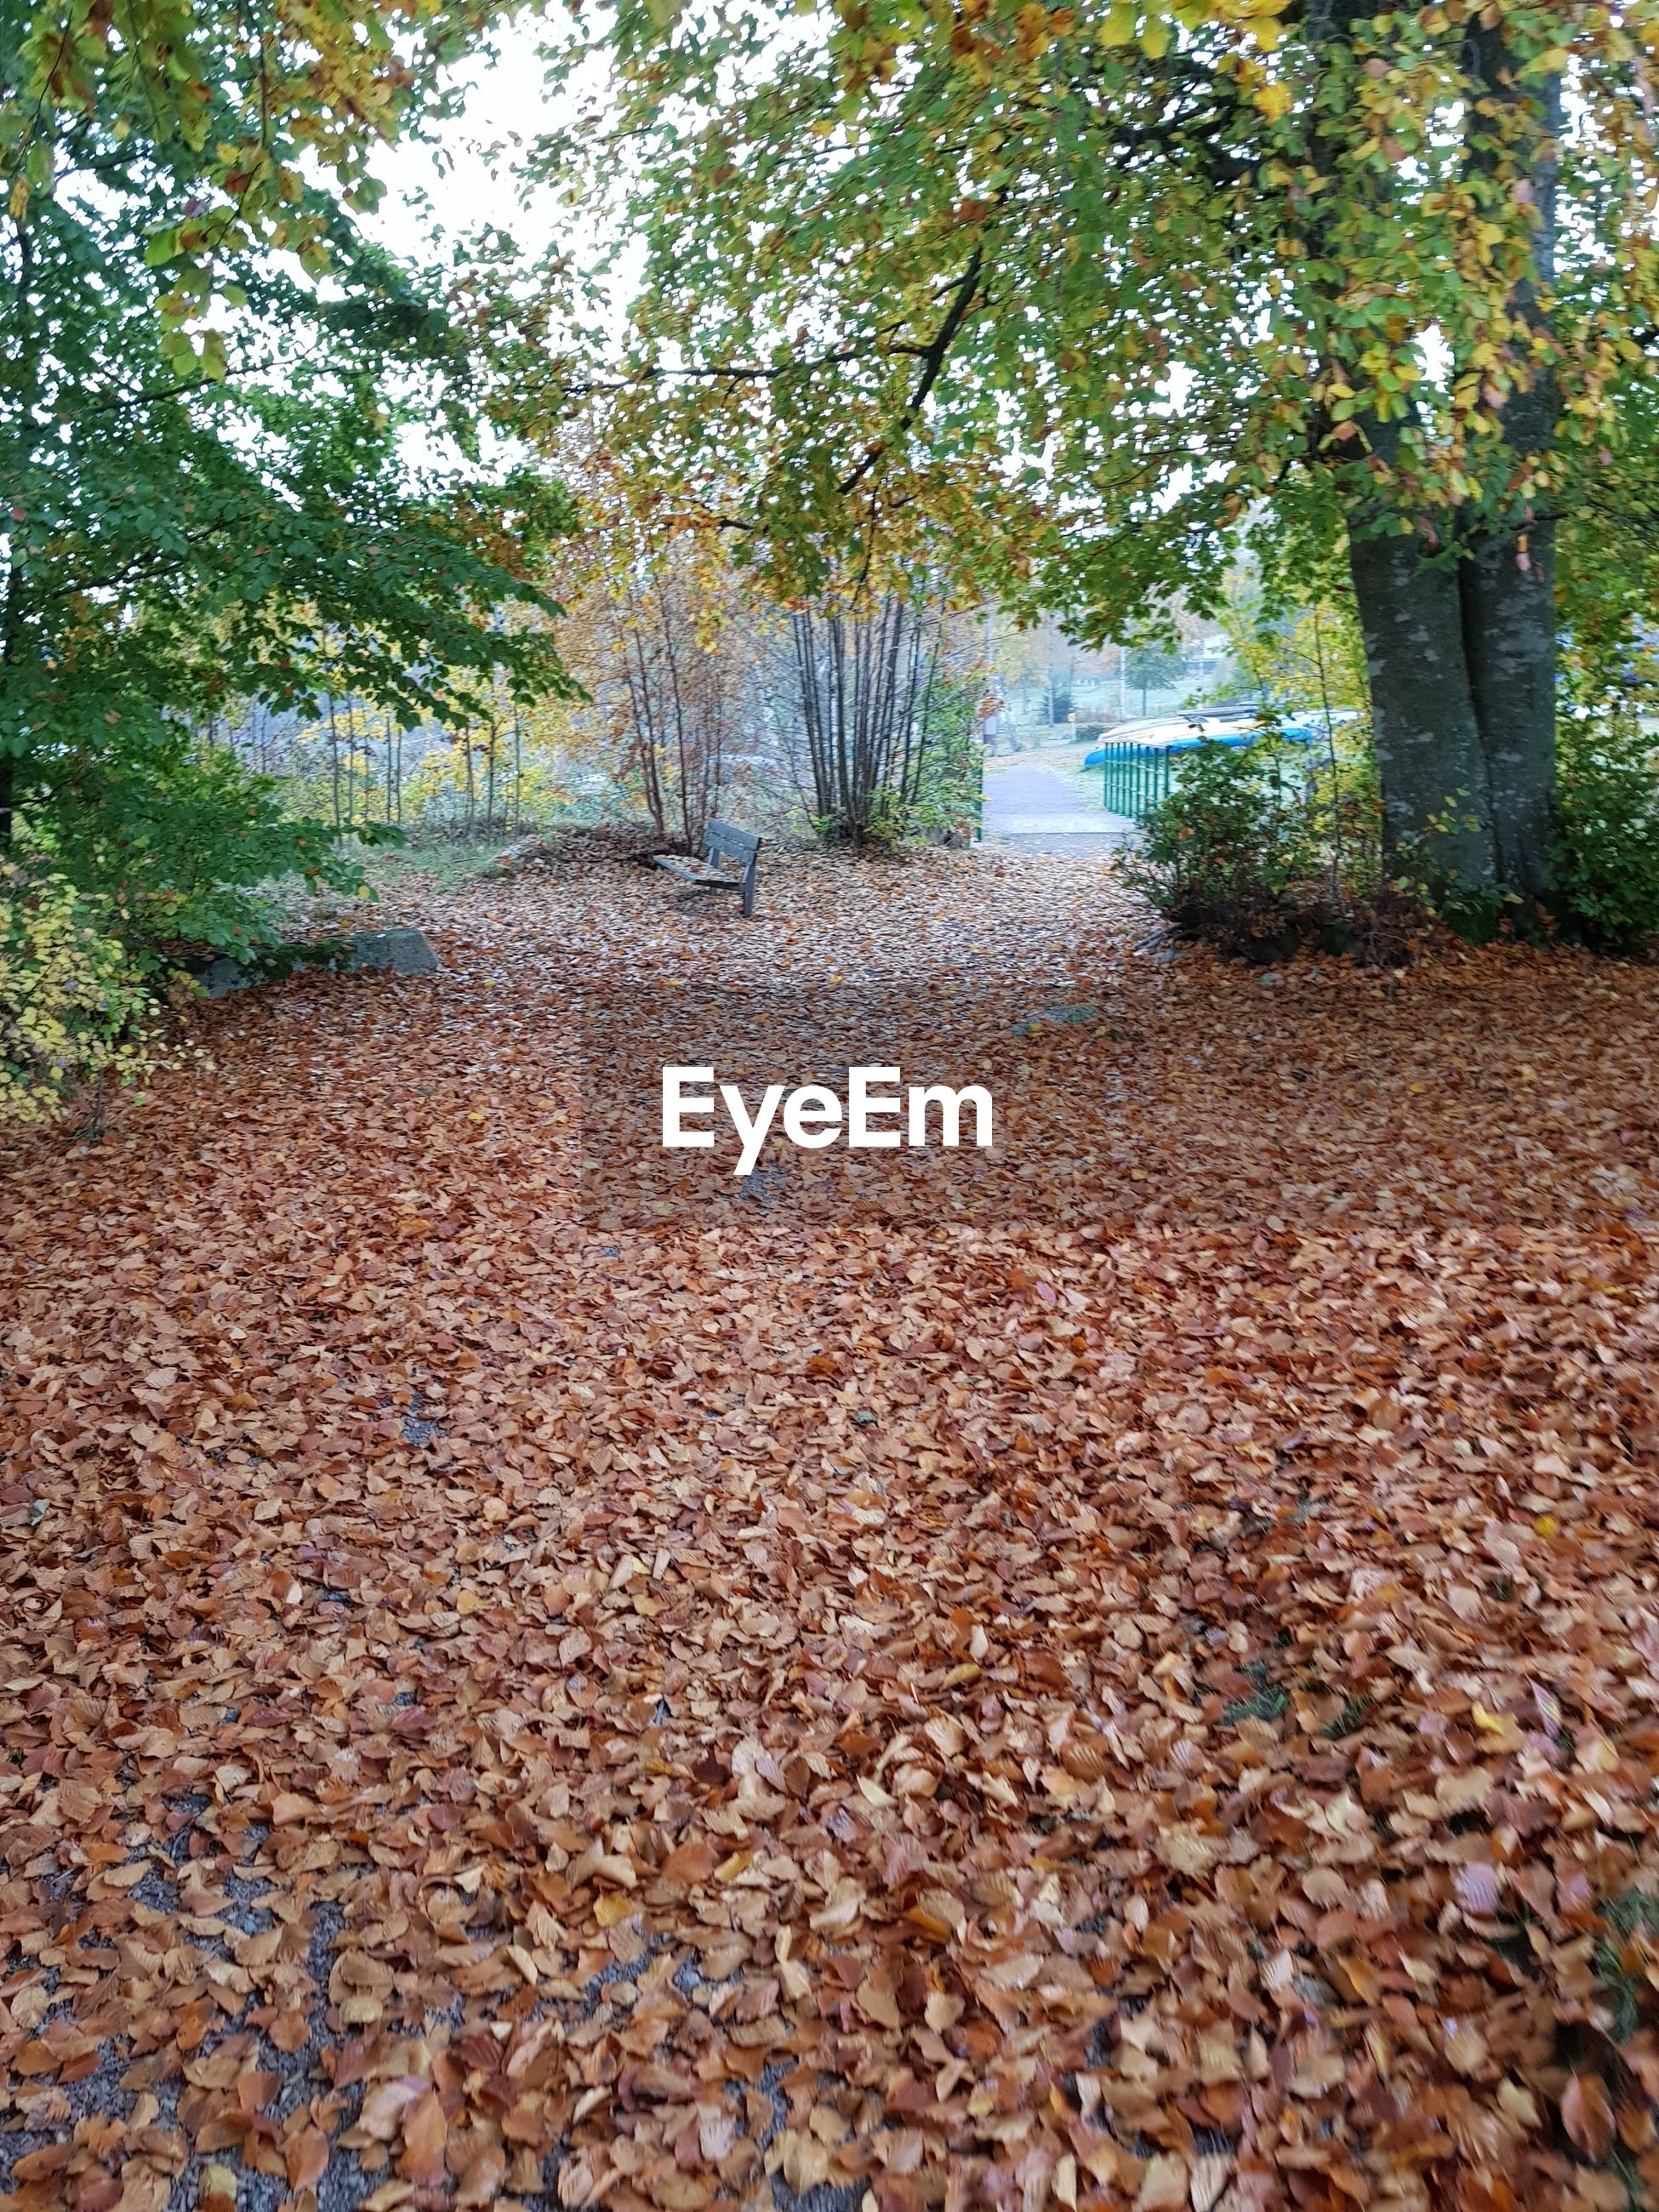 SURFACE LEVEL OF DRY LEAVES FALLEN ON FOOTPATH